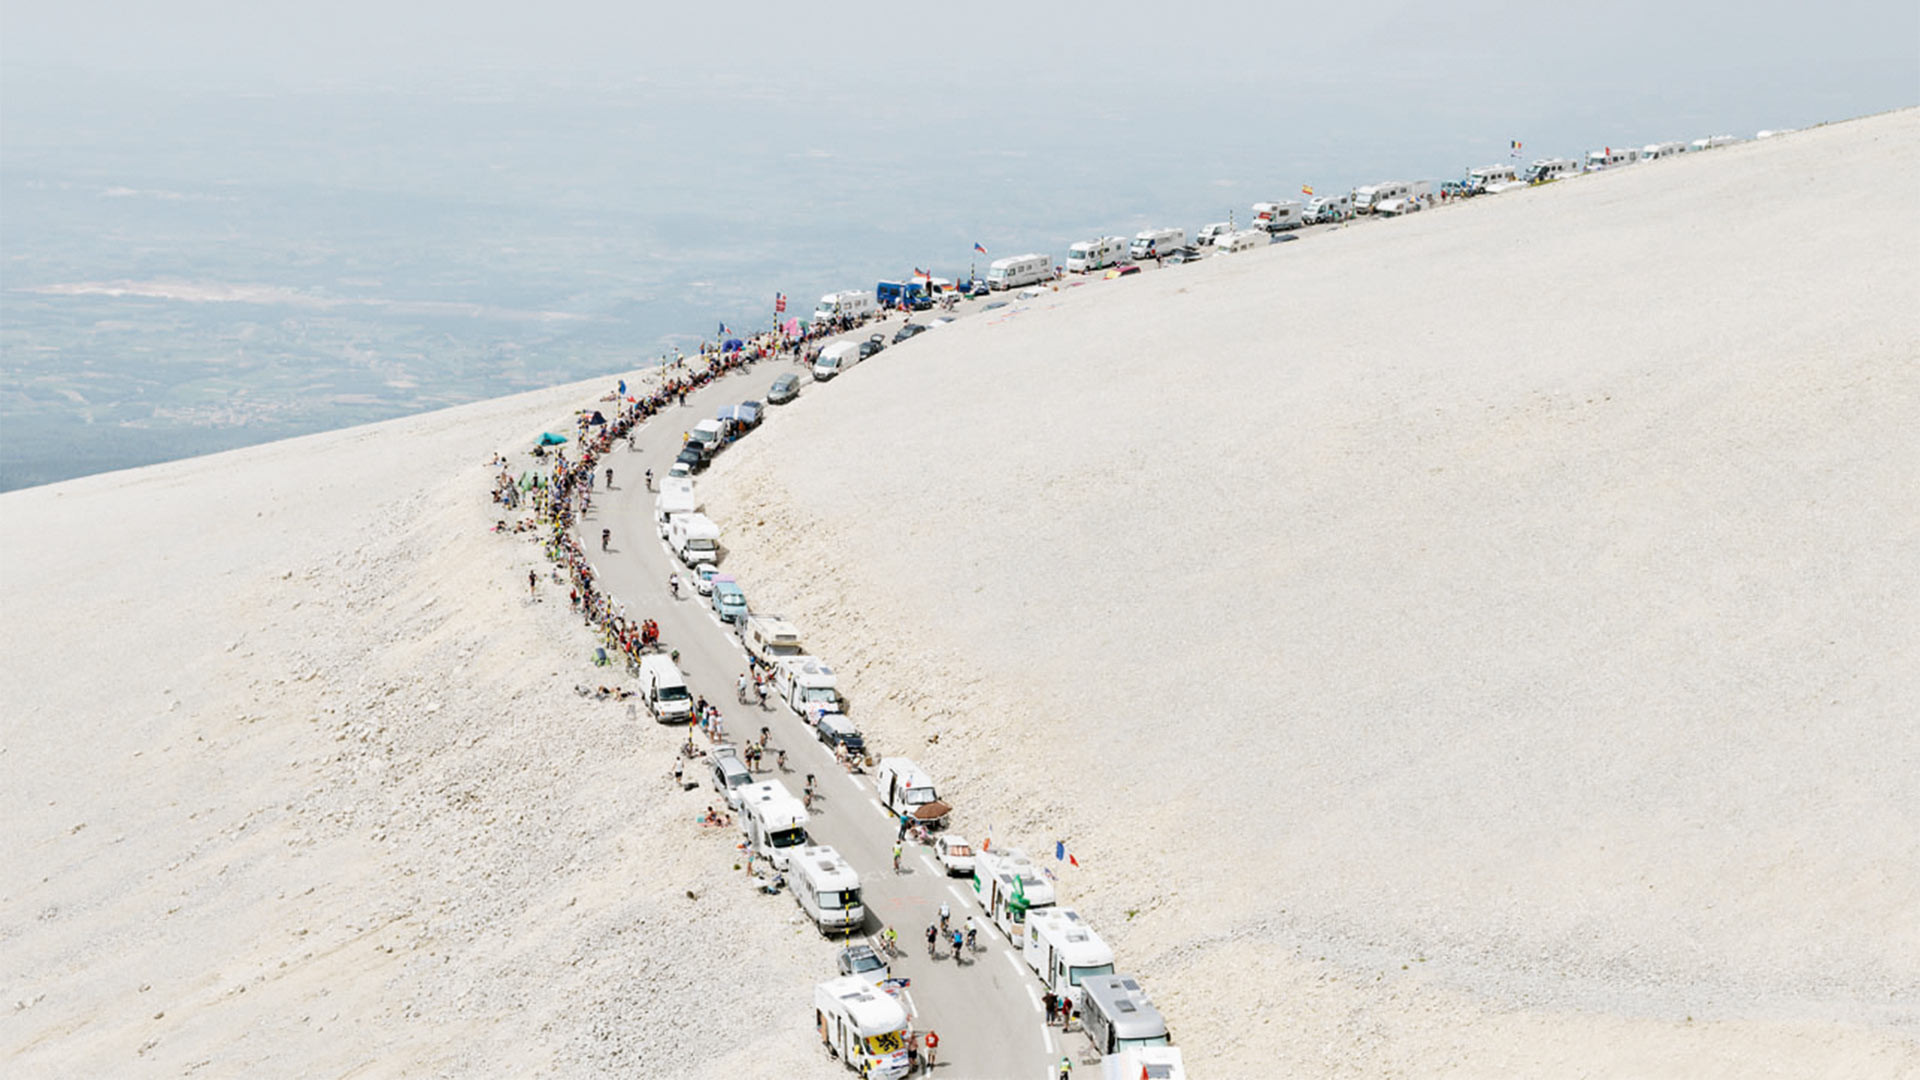 French mountain pass with cars and cycle race